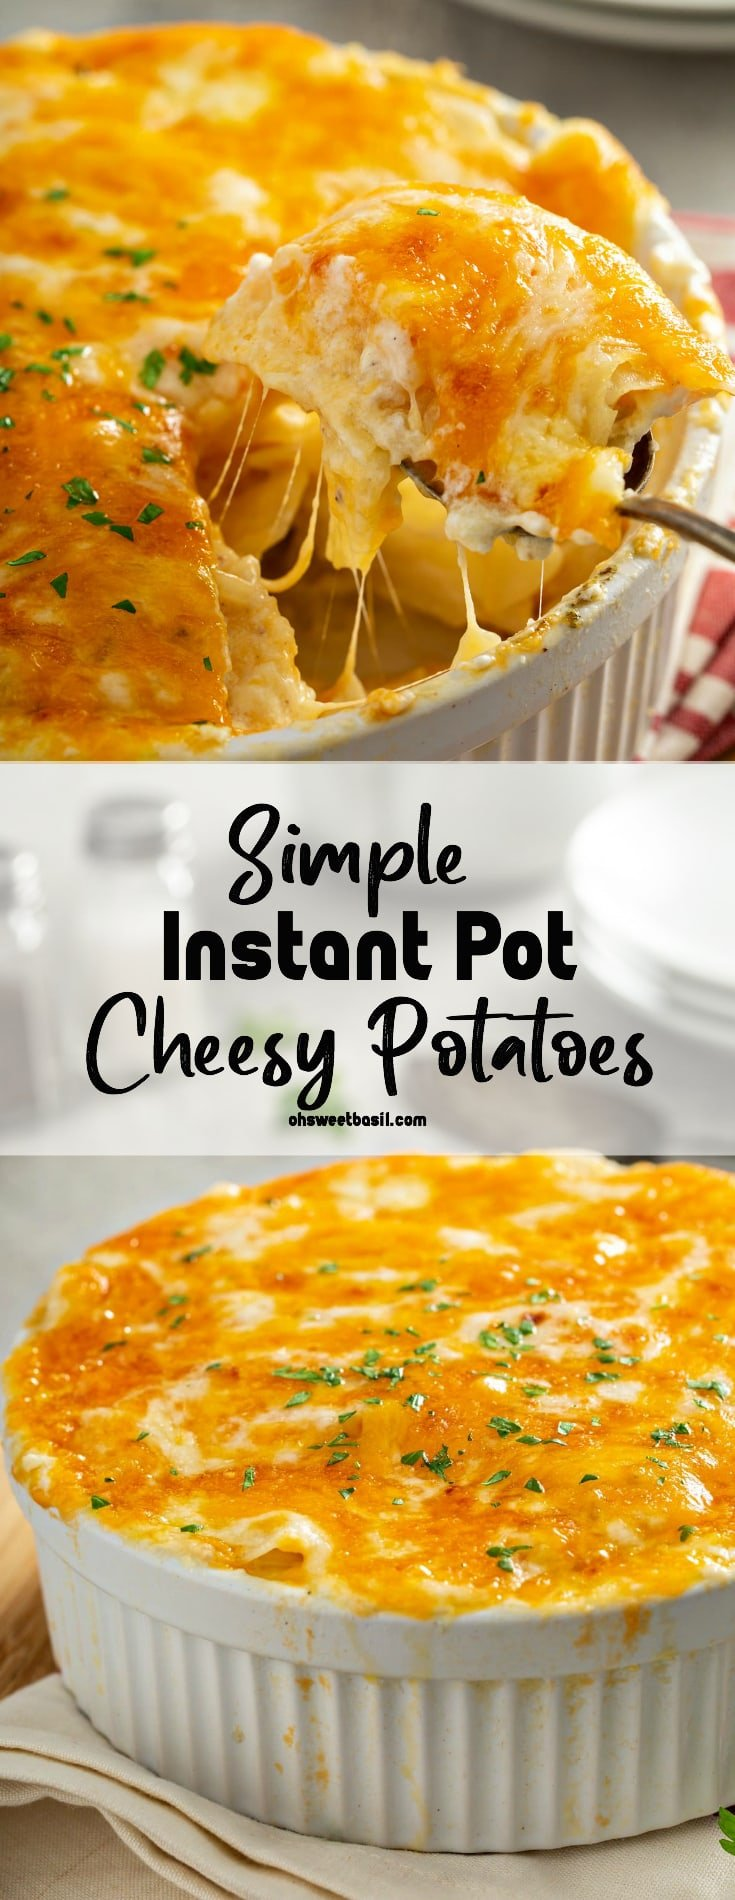 A casserole dish filled with cheesy potatoes. The cheese is melted to perfection and there are strings of cheesy hanging from the serving spoon.